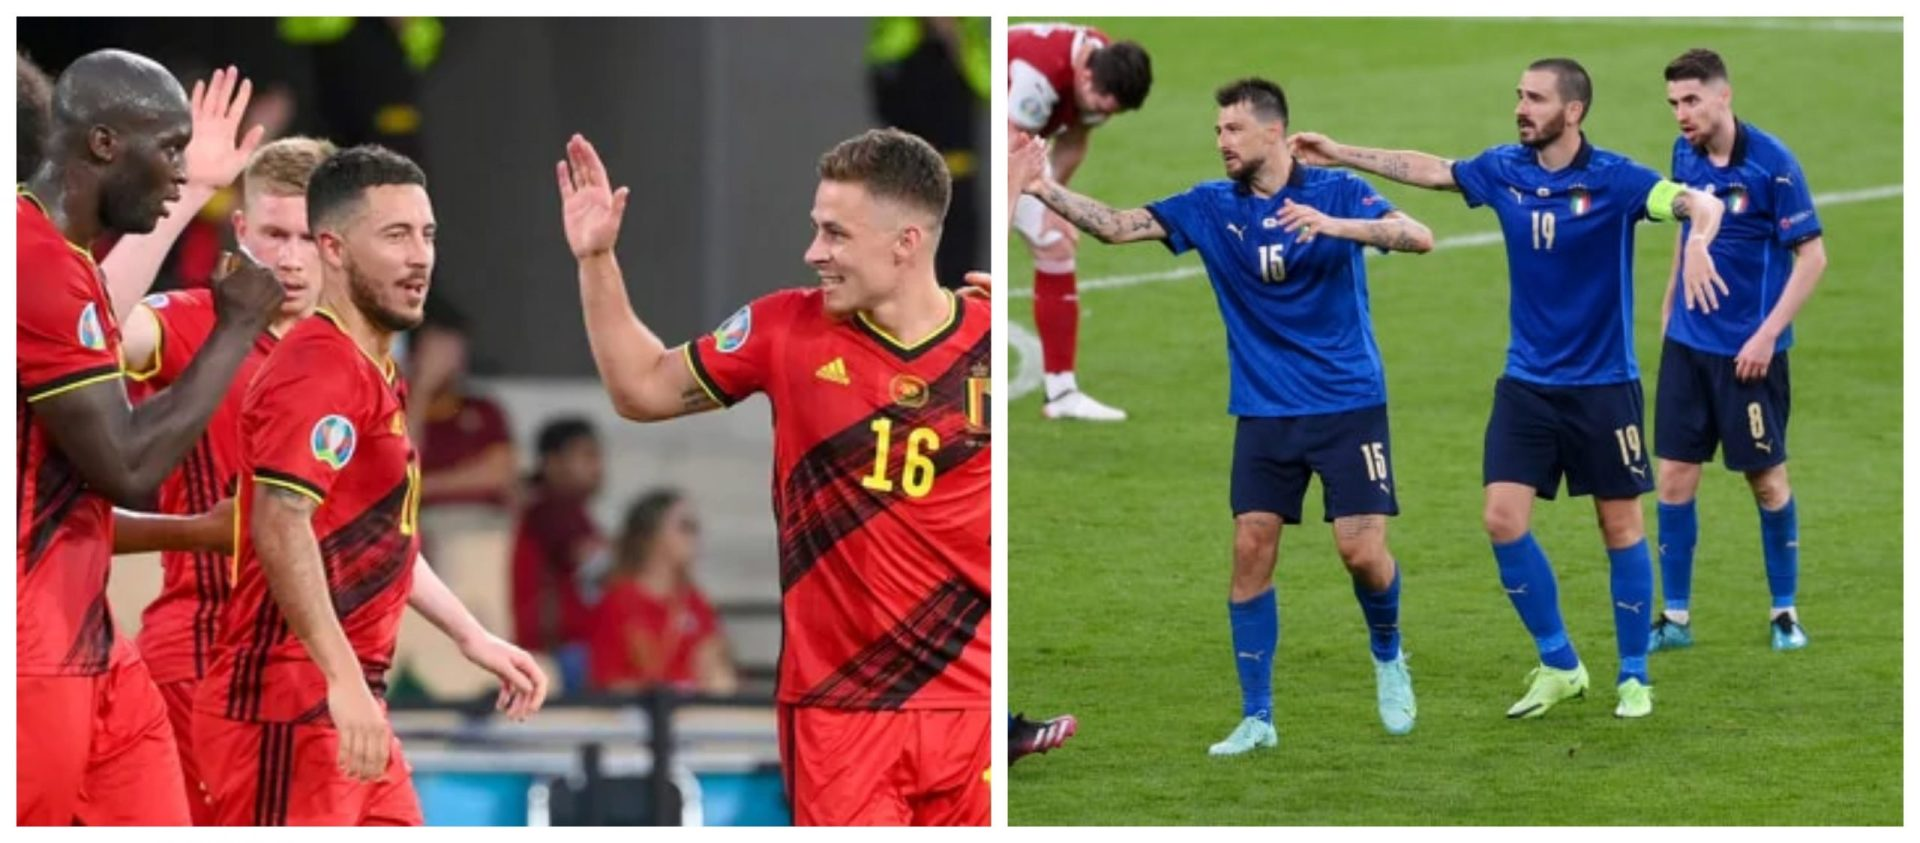 EURO 2020: Belgium vs Italy QF 2 Odds, Predictions, and Analysis - THE SPORTS ROOM